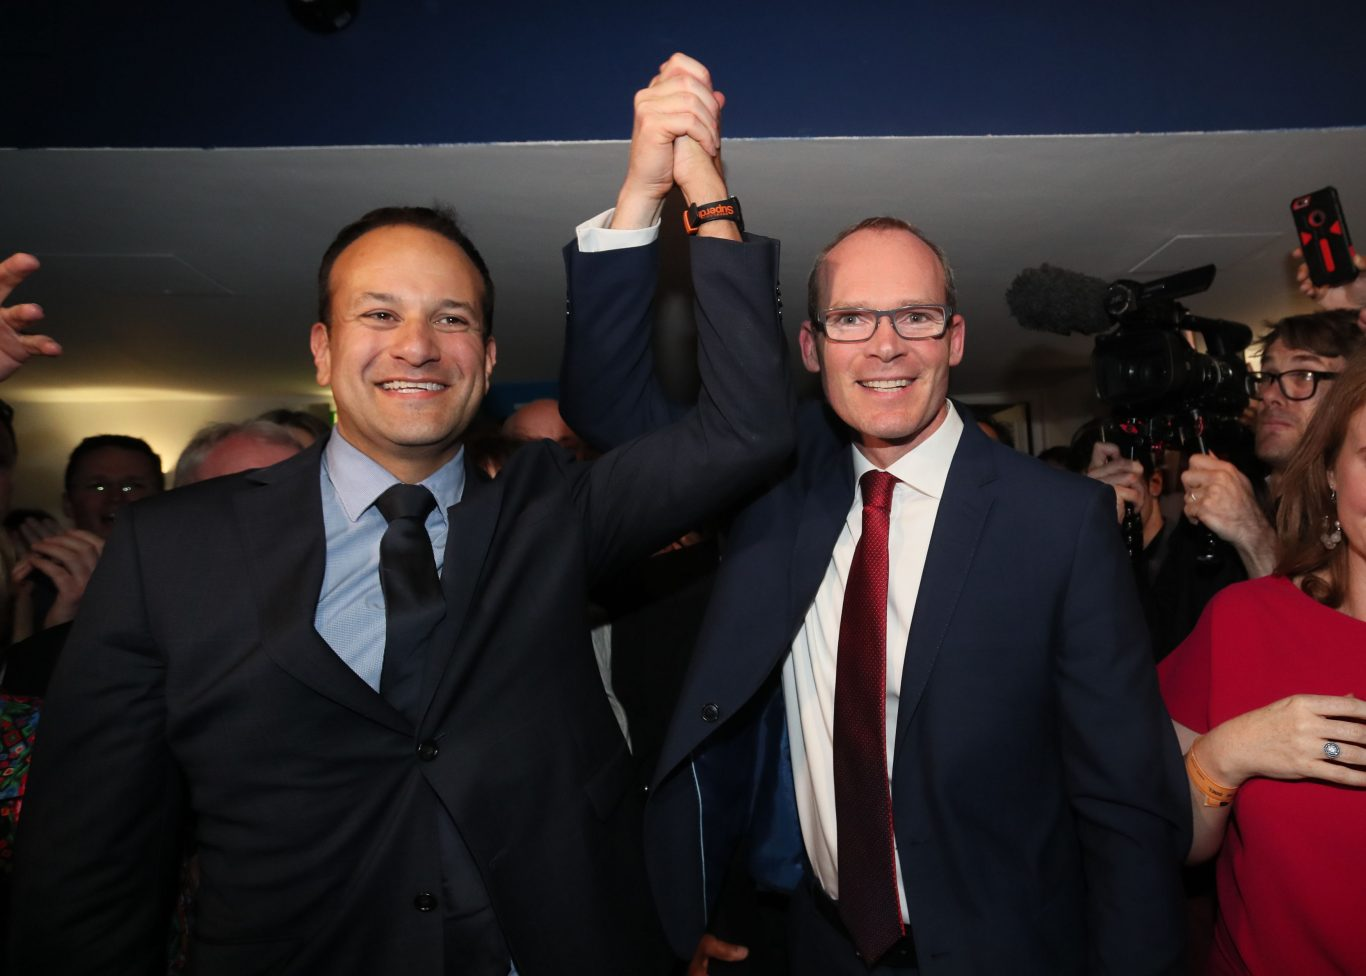 Simon Coveney  congratulates Leo Varadkar as he is named as the leader of the Fine Gael party (Brian Lawless/PA)